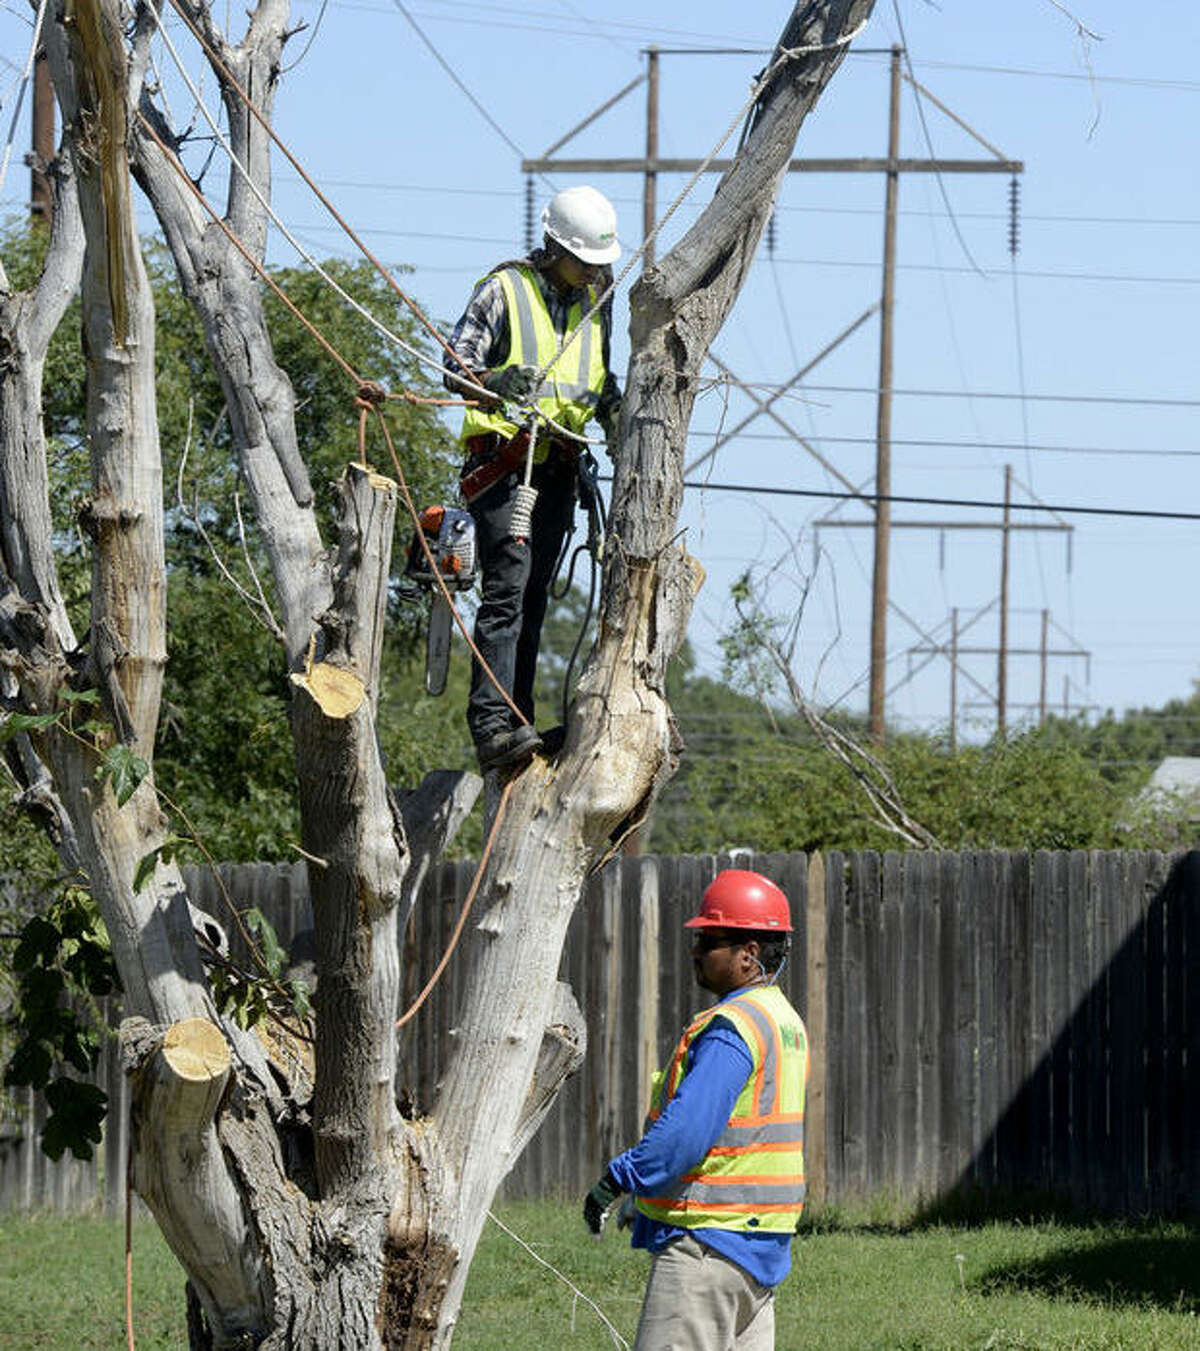 Workers take down a tree at a home on Lanham Street to allow access to high power lines behind the house, Tuesday, Oct. 13, 2015. James Durbin/Reporter-Telegram